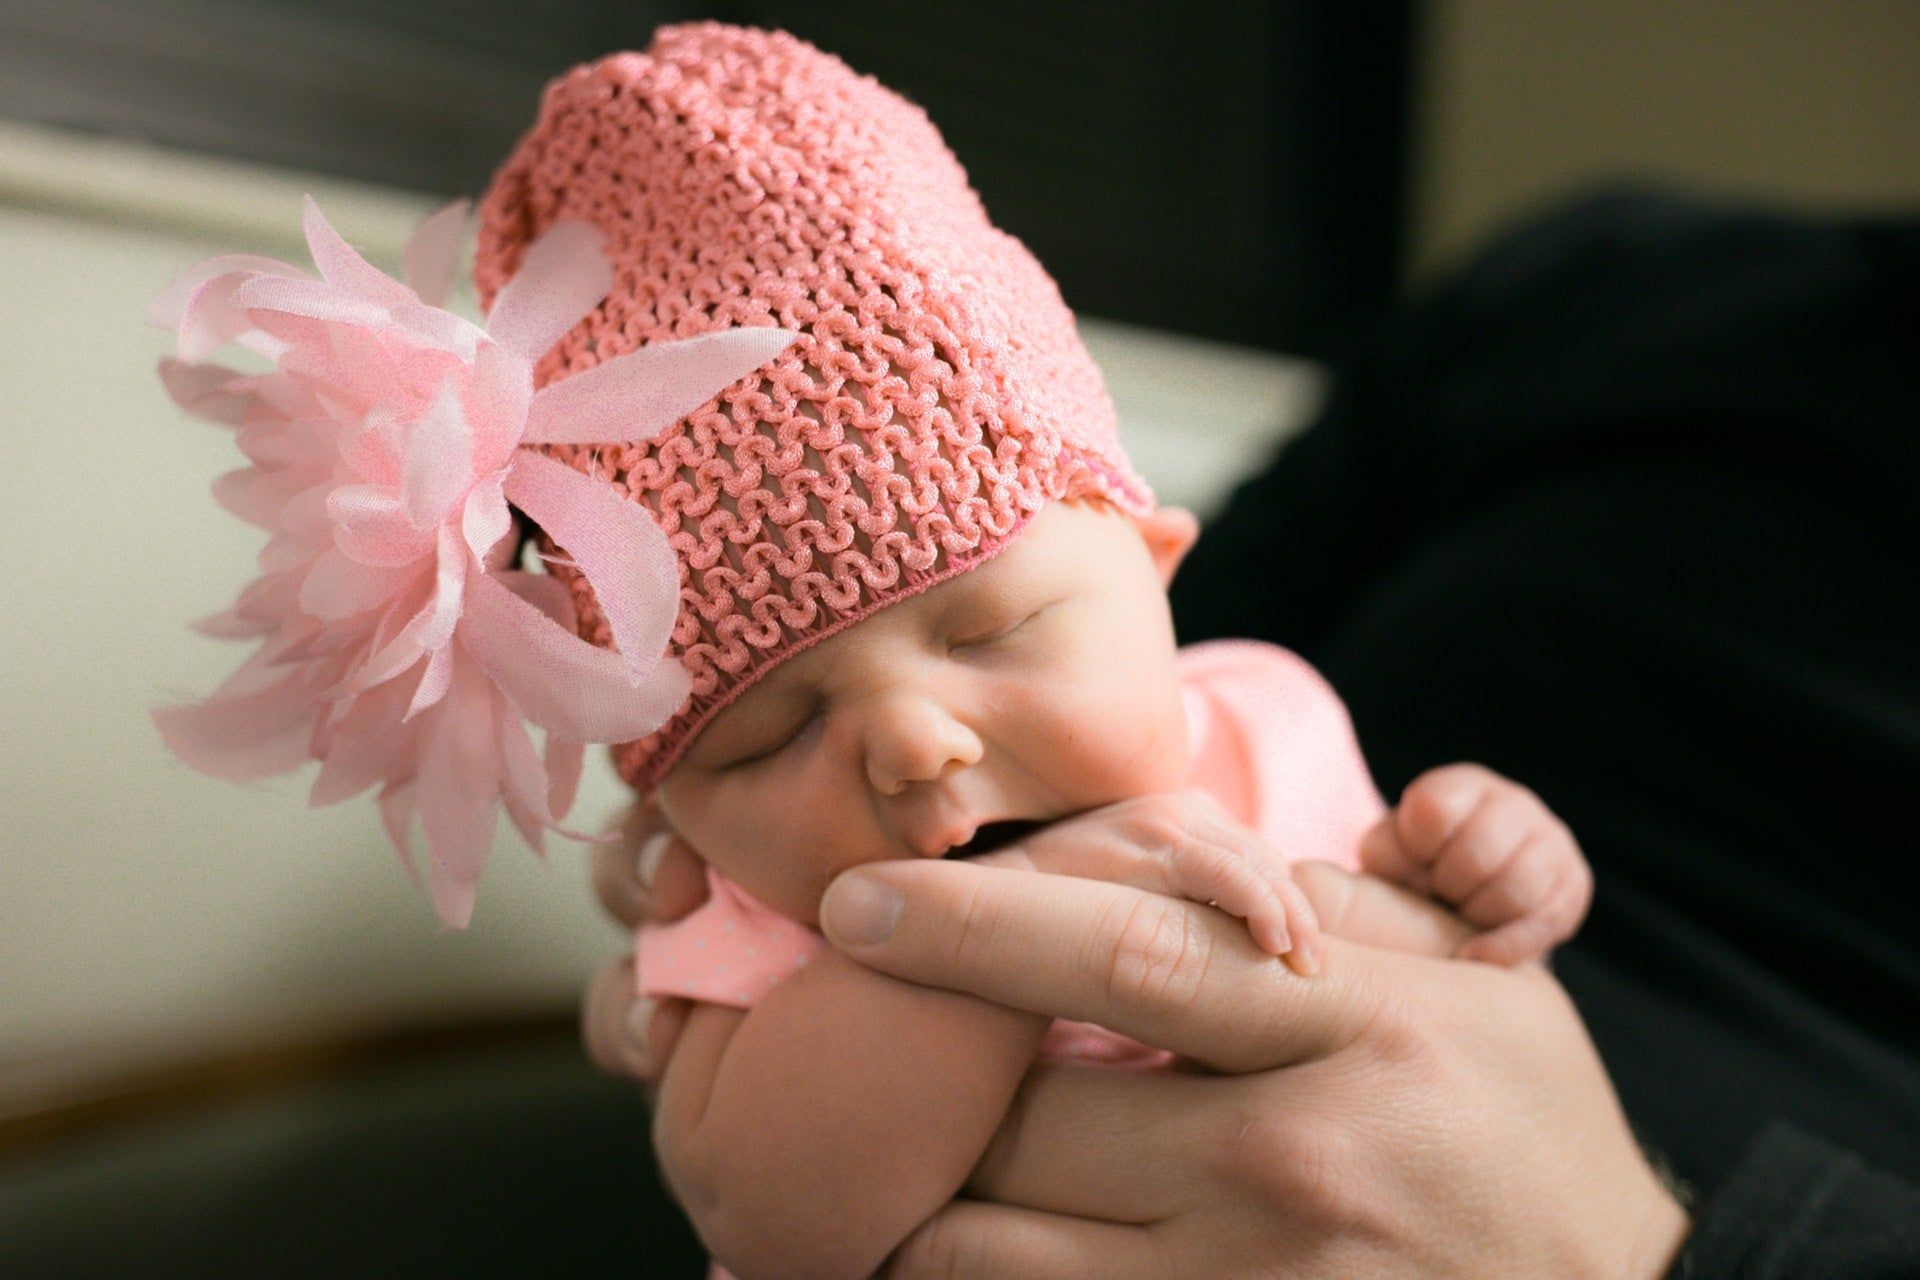 Baby in a pink knit cap